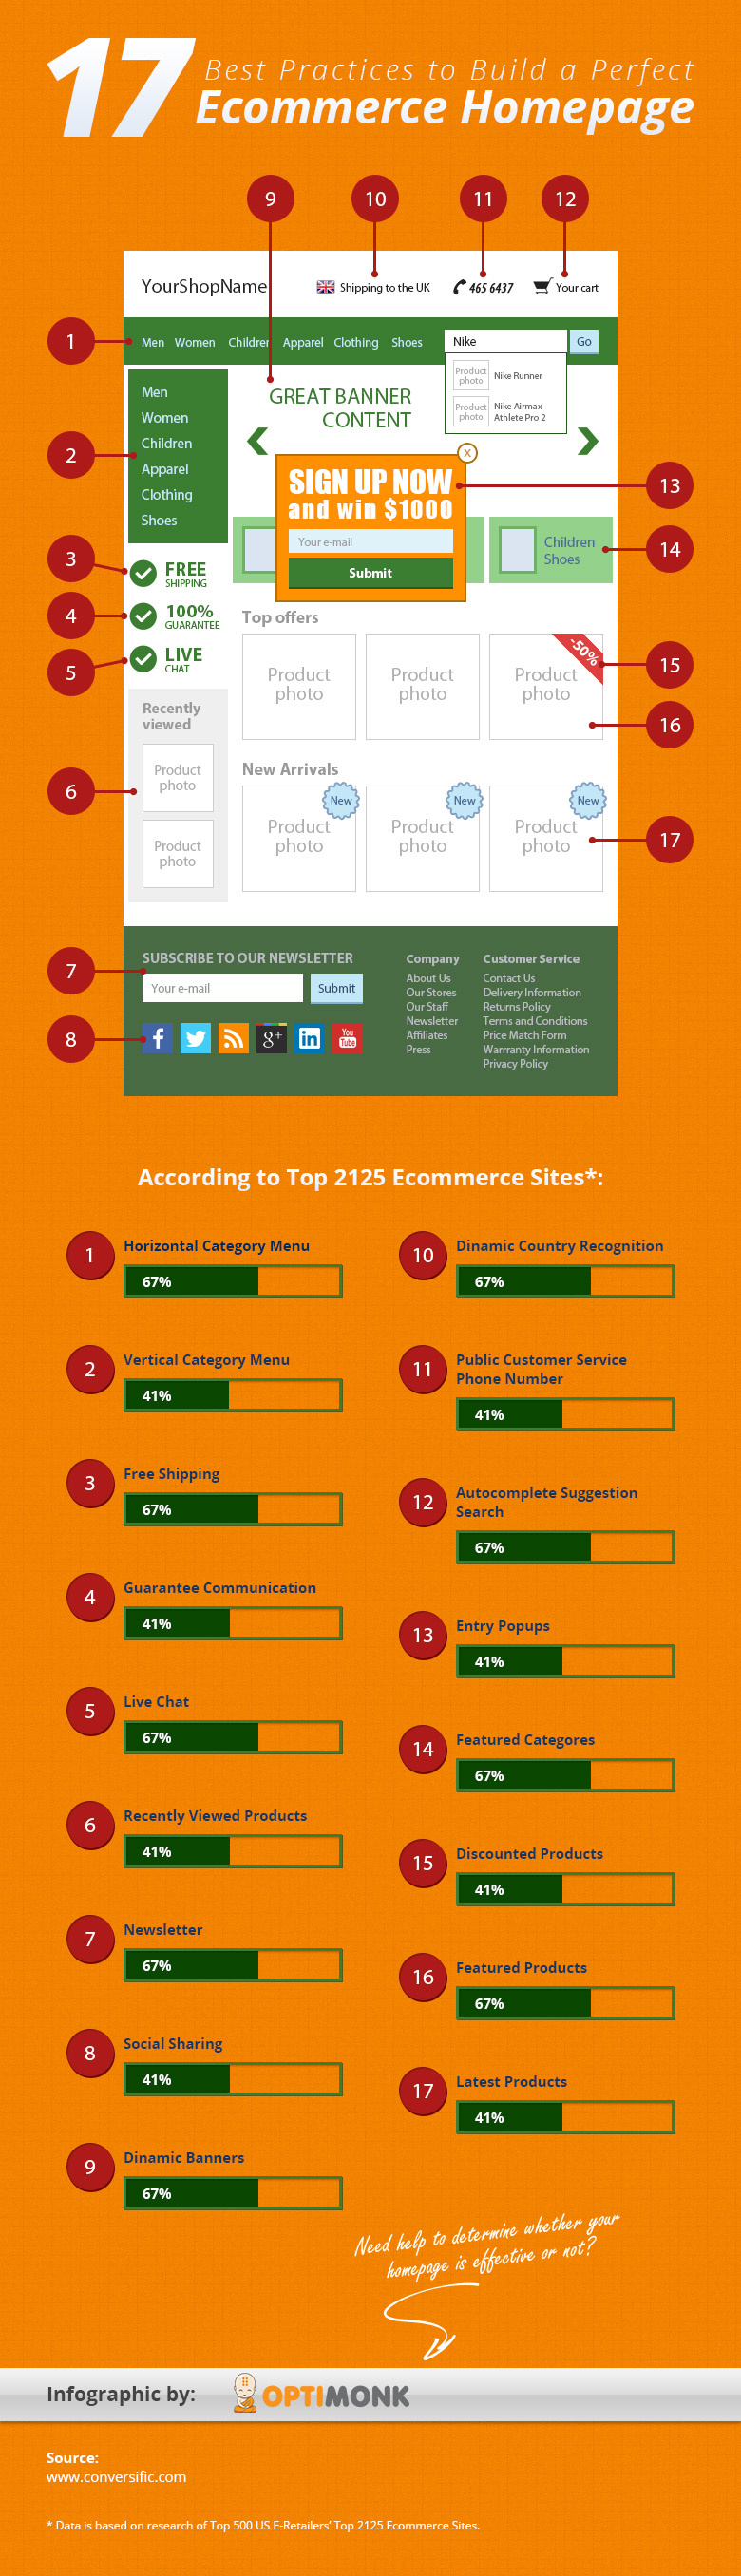 infographie-ecommerce-homepage